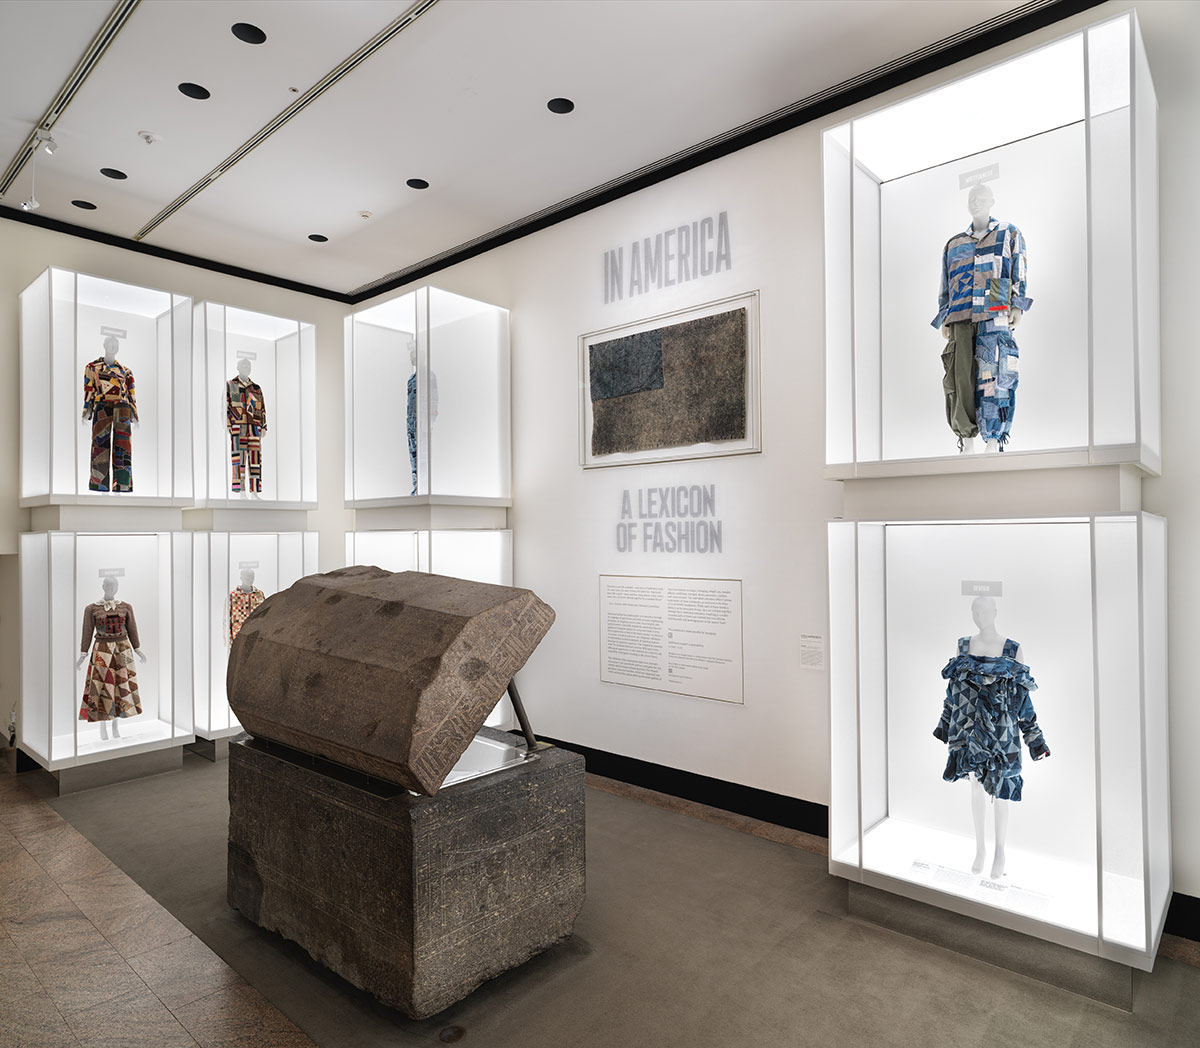 Gallery view of the exhibition, In America: A Lexicon of Fashion.